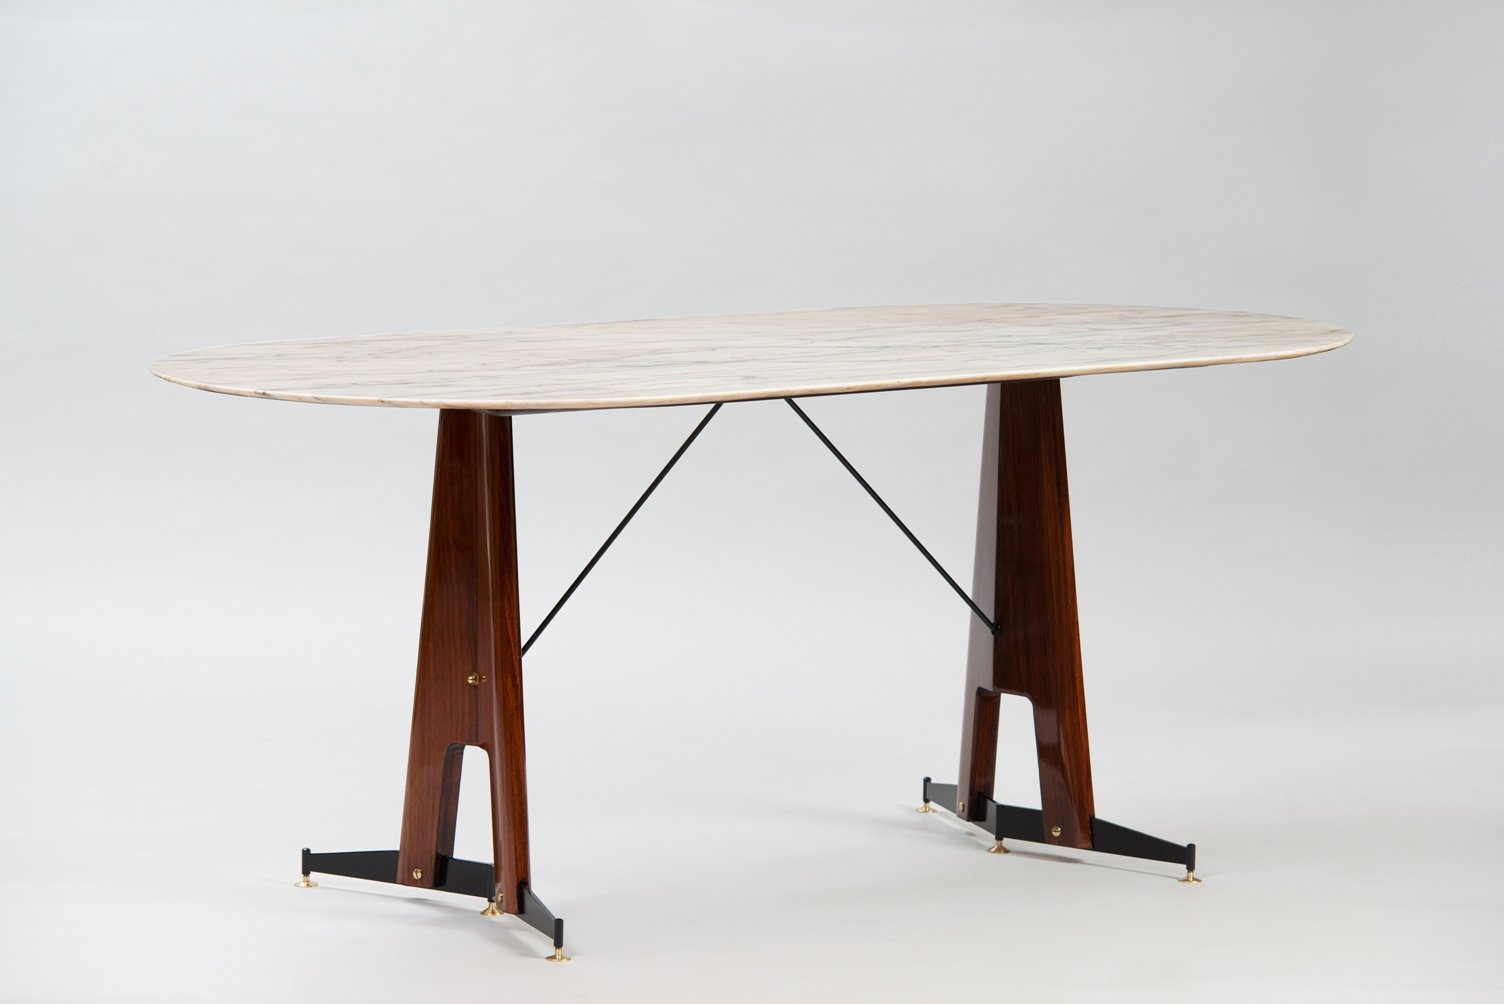 Table salle a manger marbre design for Table salle a manger 8 places